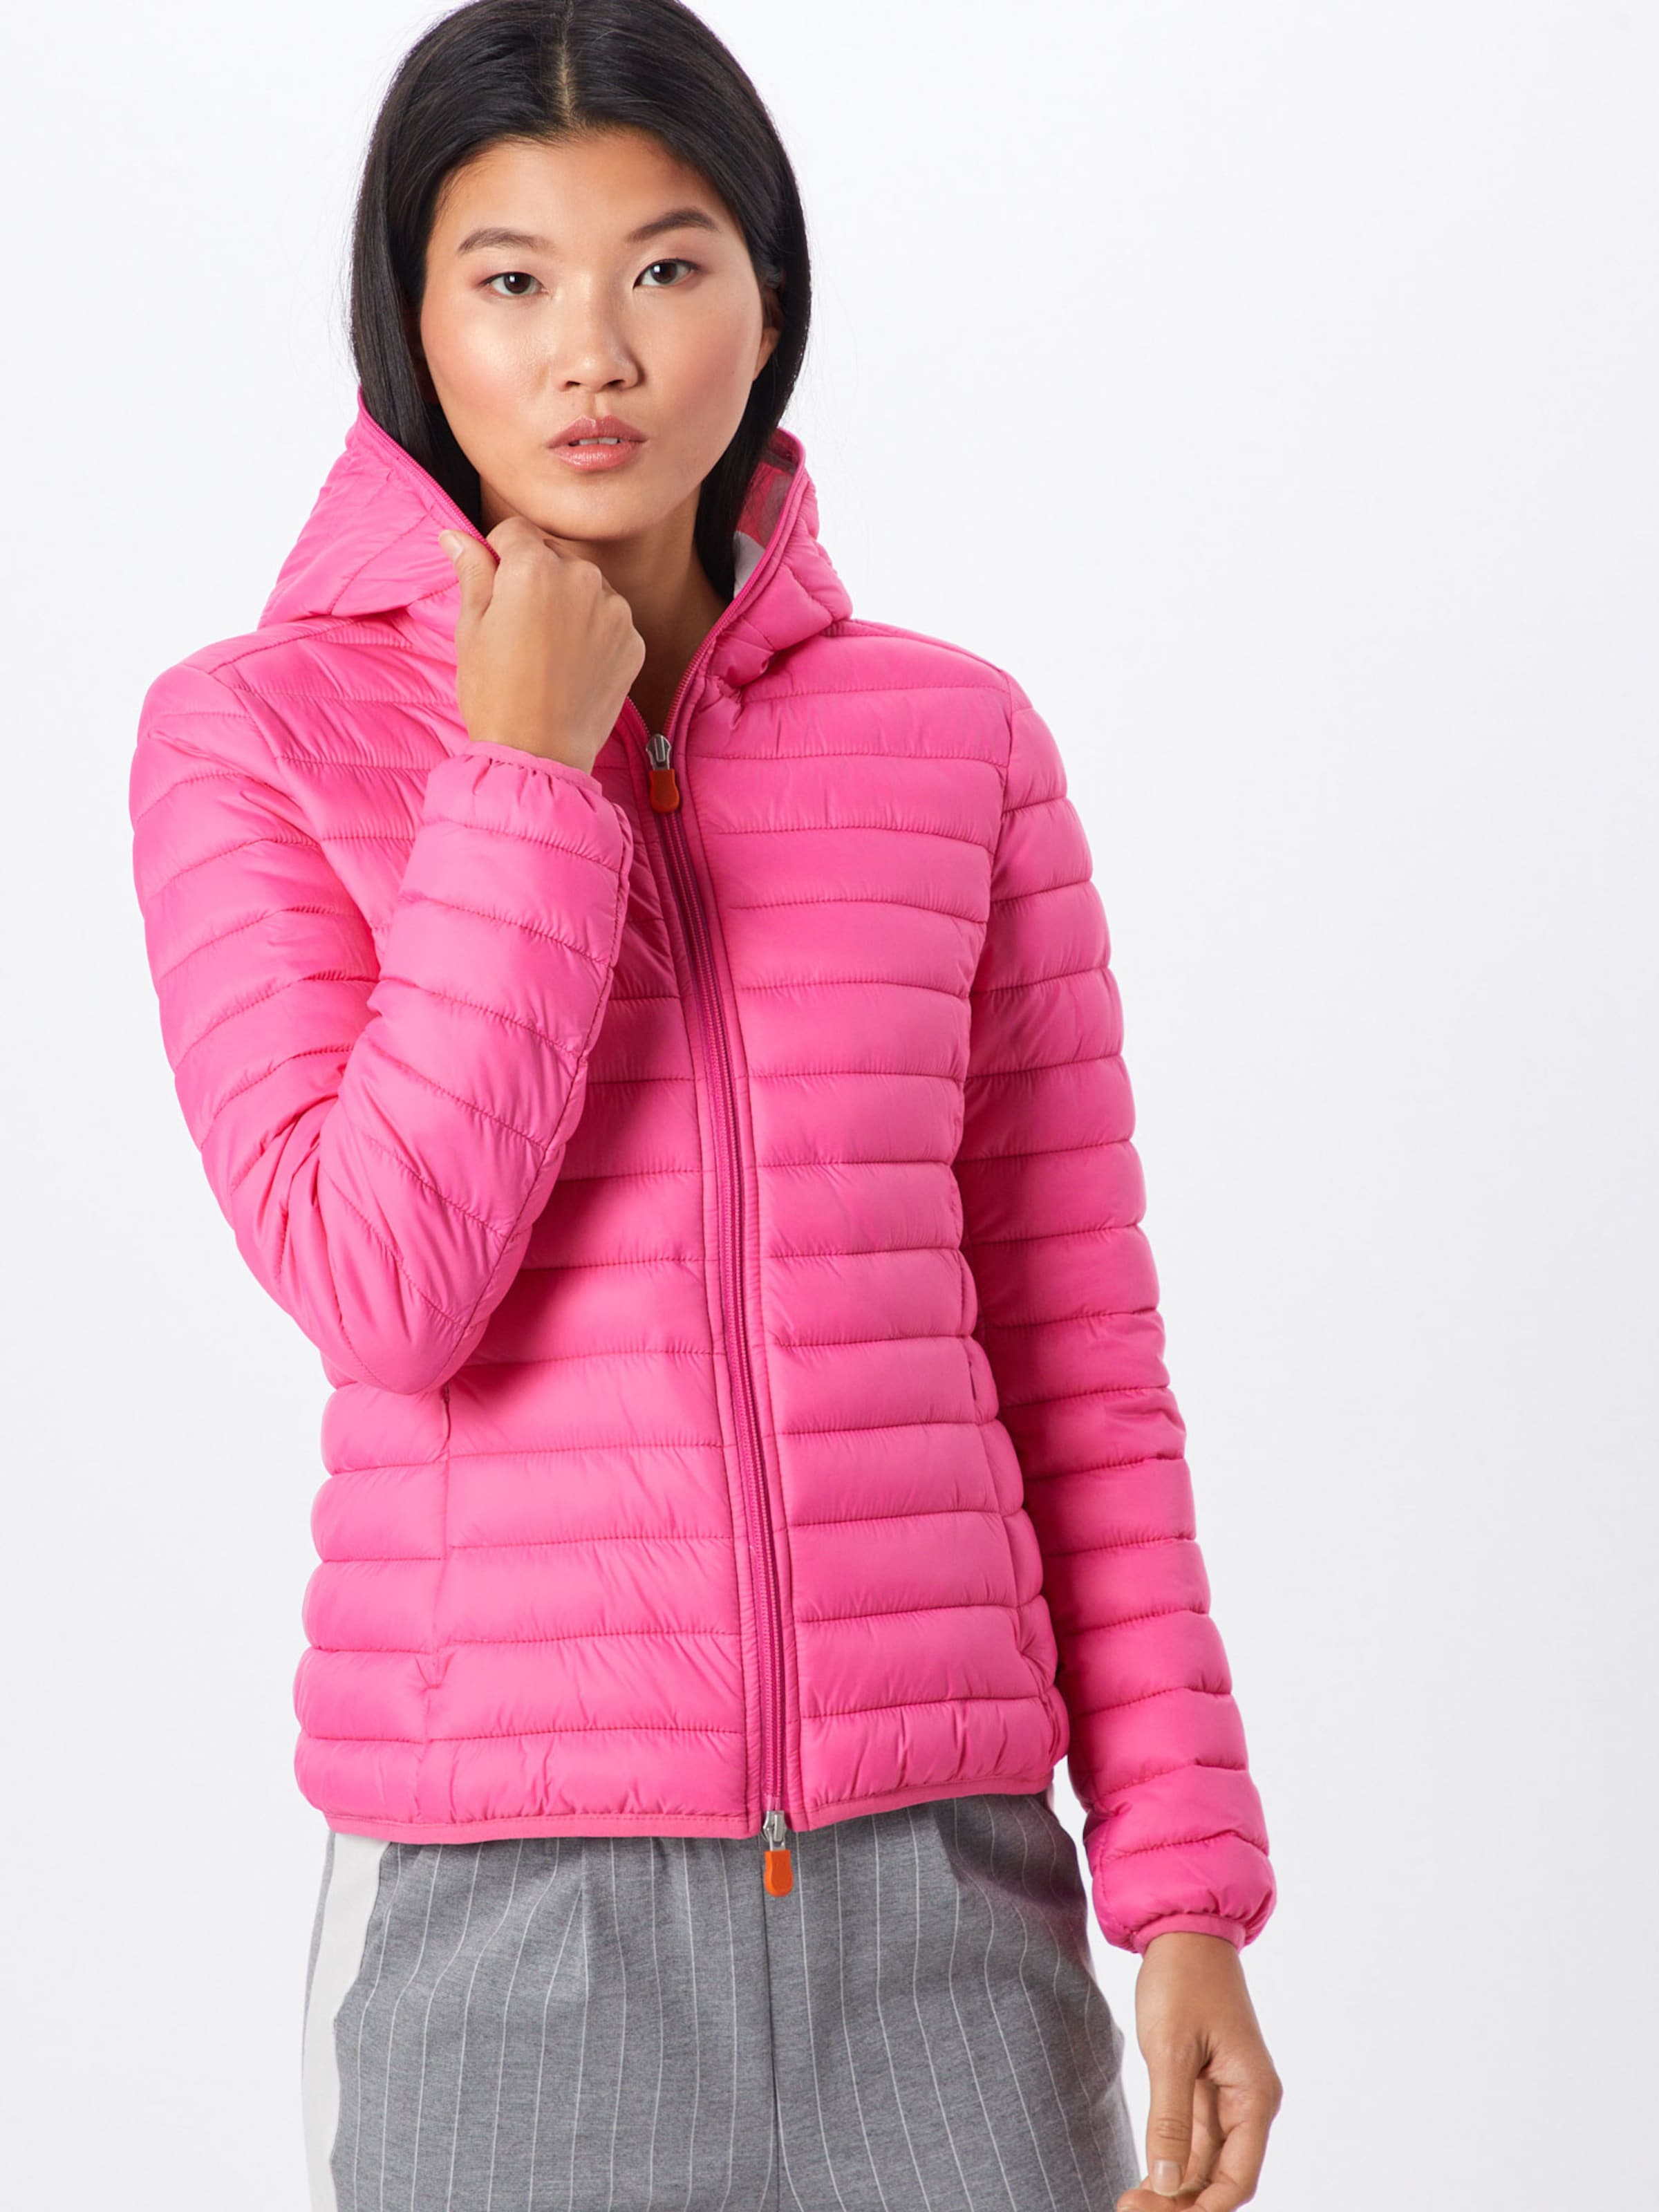 Duck Pink The In Jacke Save 'giubbotto Cappuccio' EH2WD9I